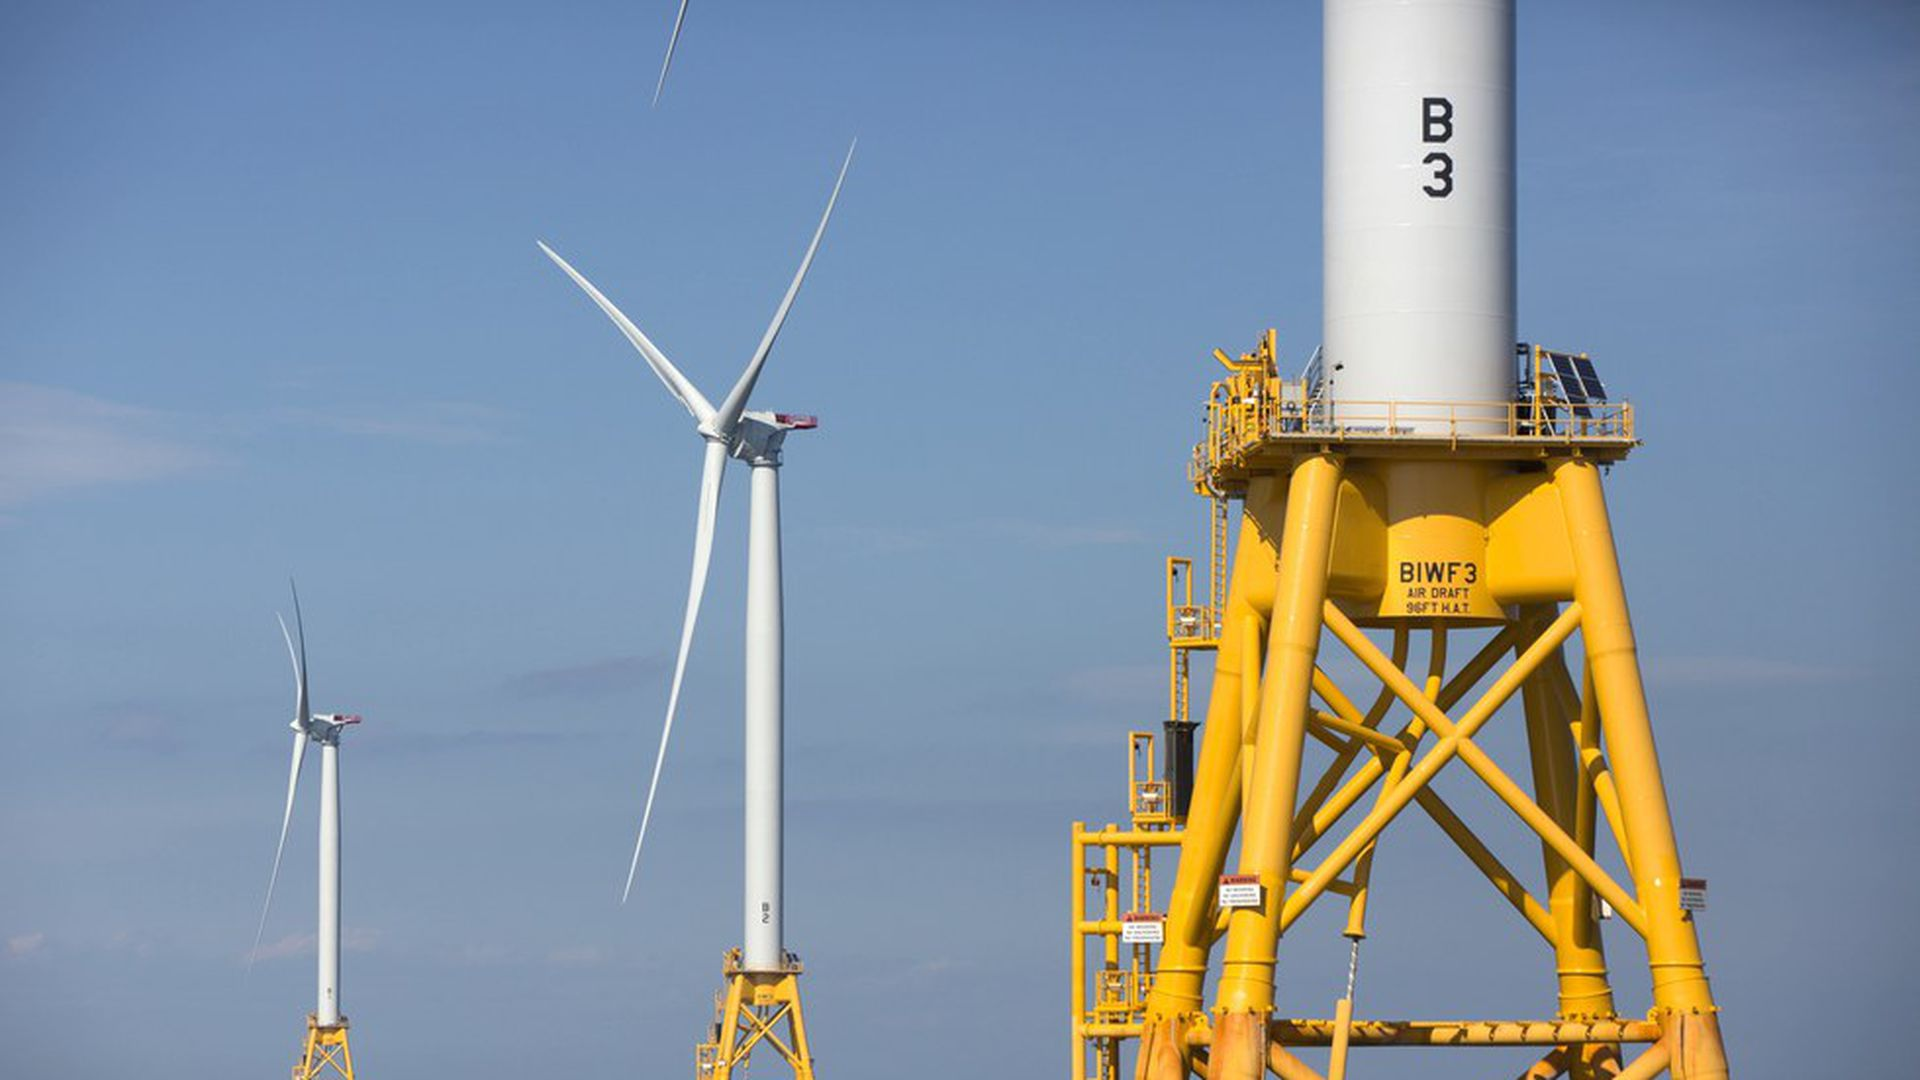 Wind company plans offshore project with tesla batteries for Wind mobile family plan